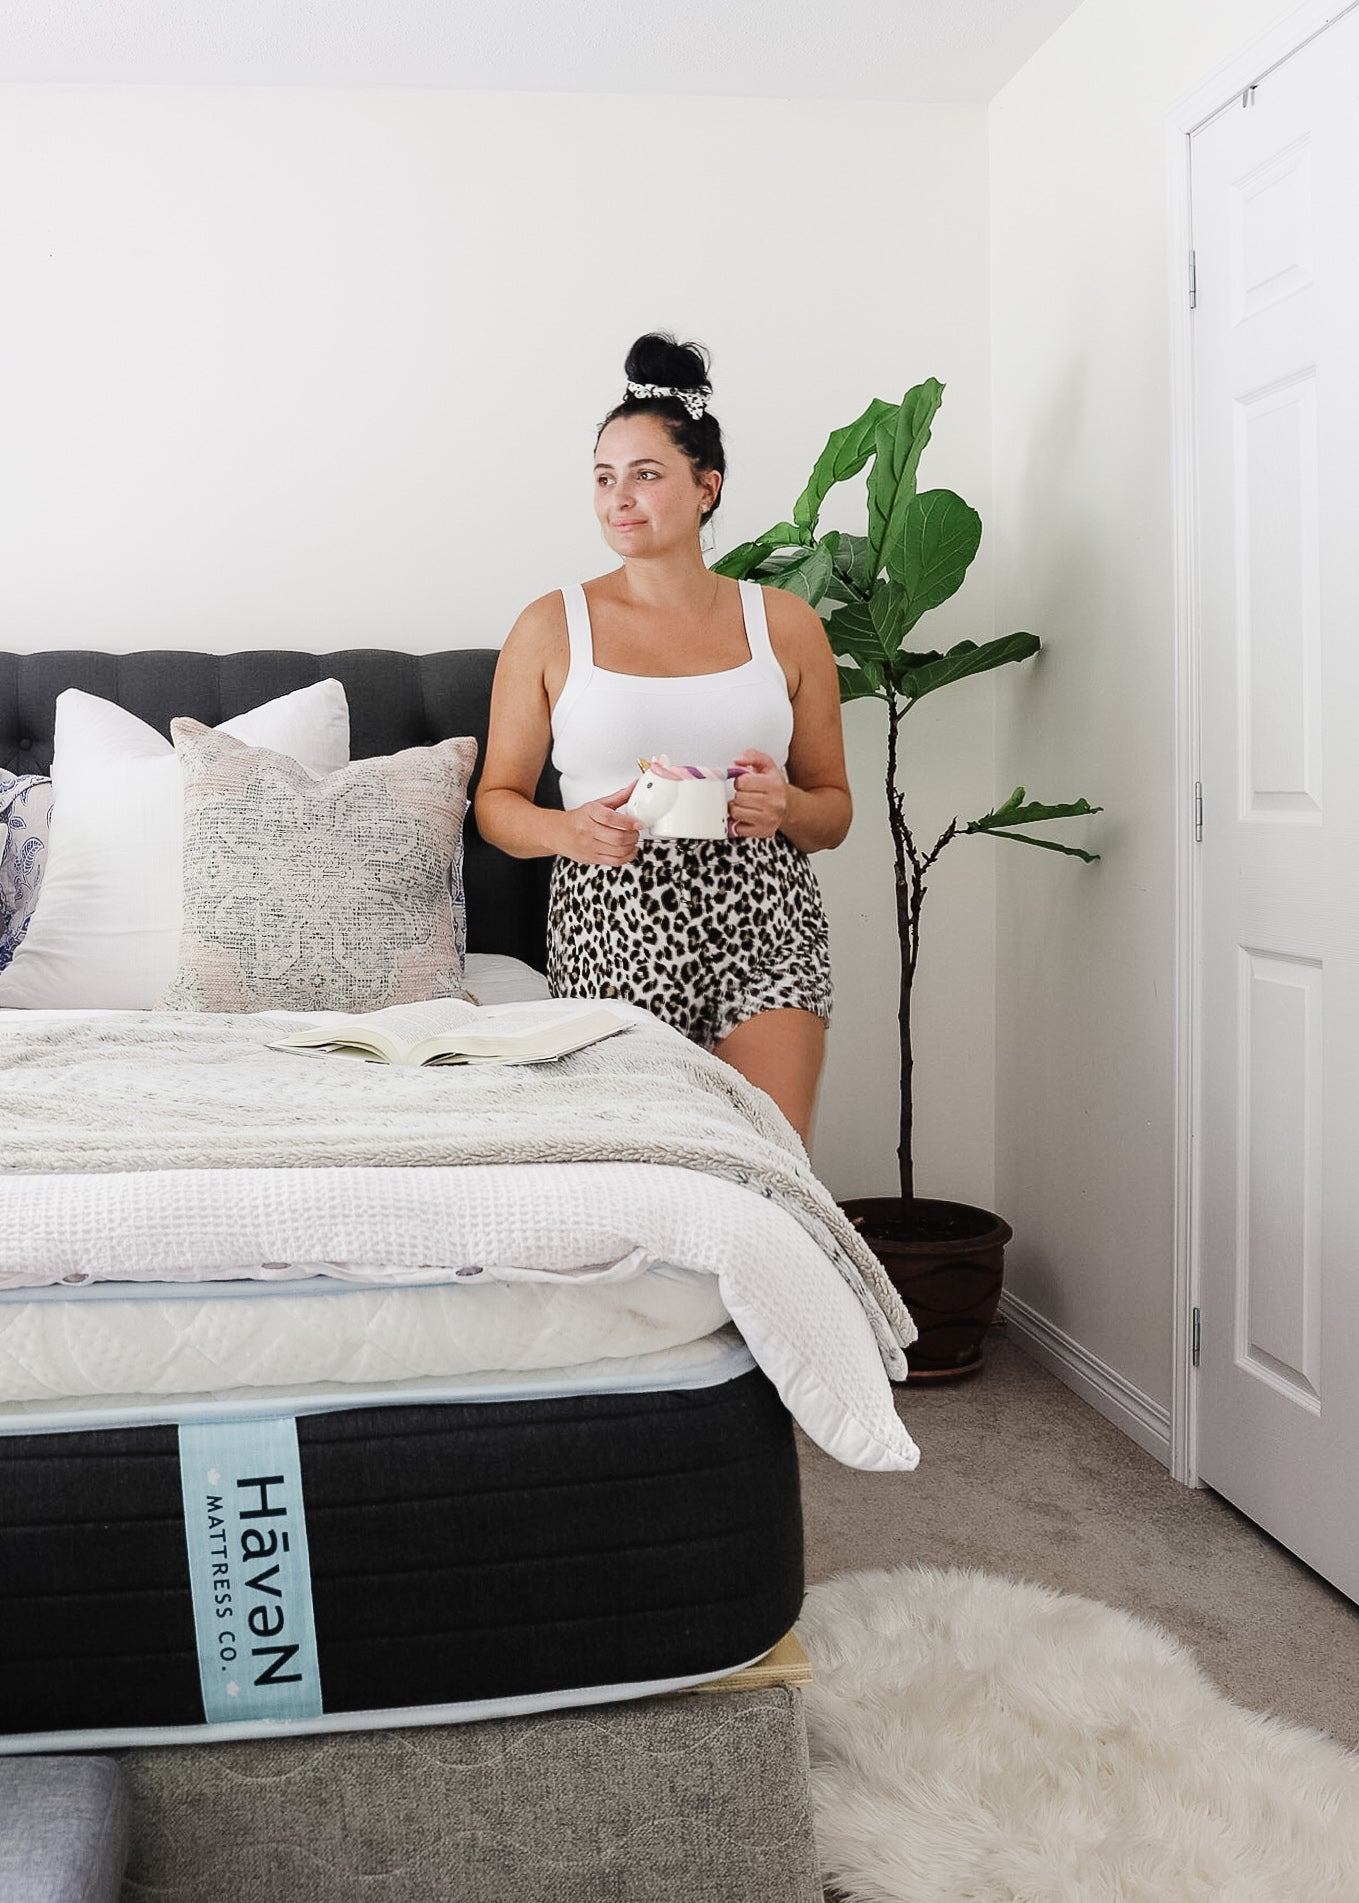 Stephanie Vainer SPV Living blogger and mom drinking in a mug by Haven mattress